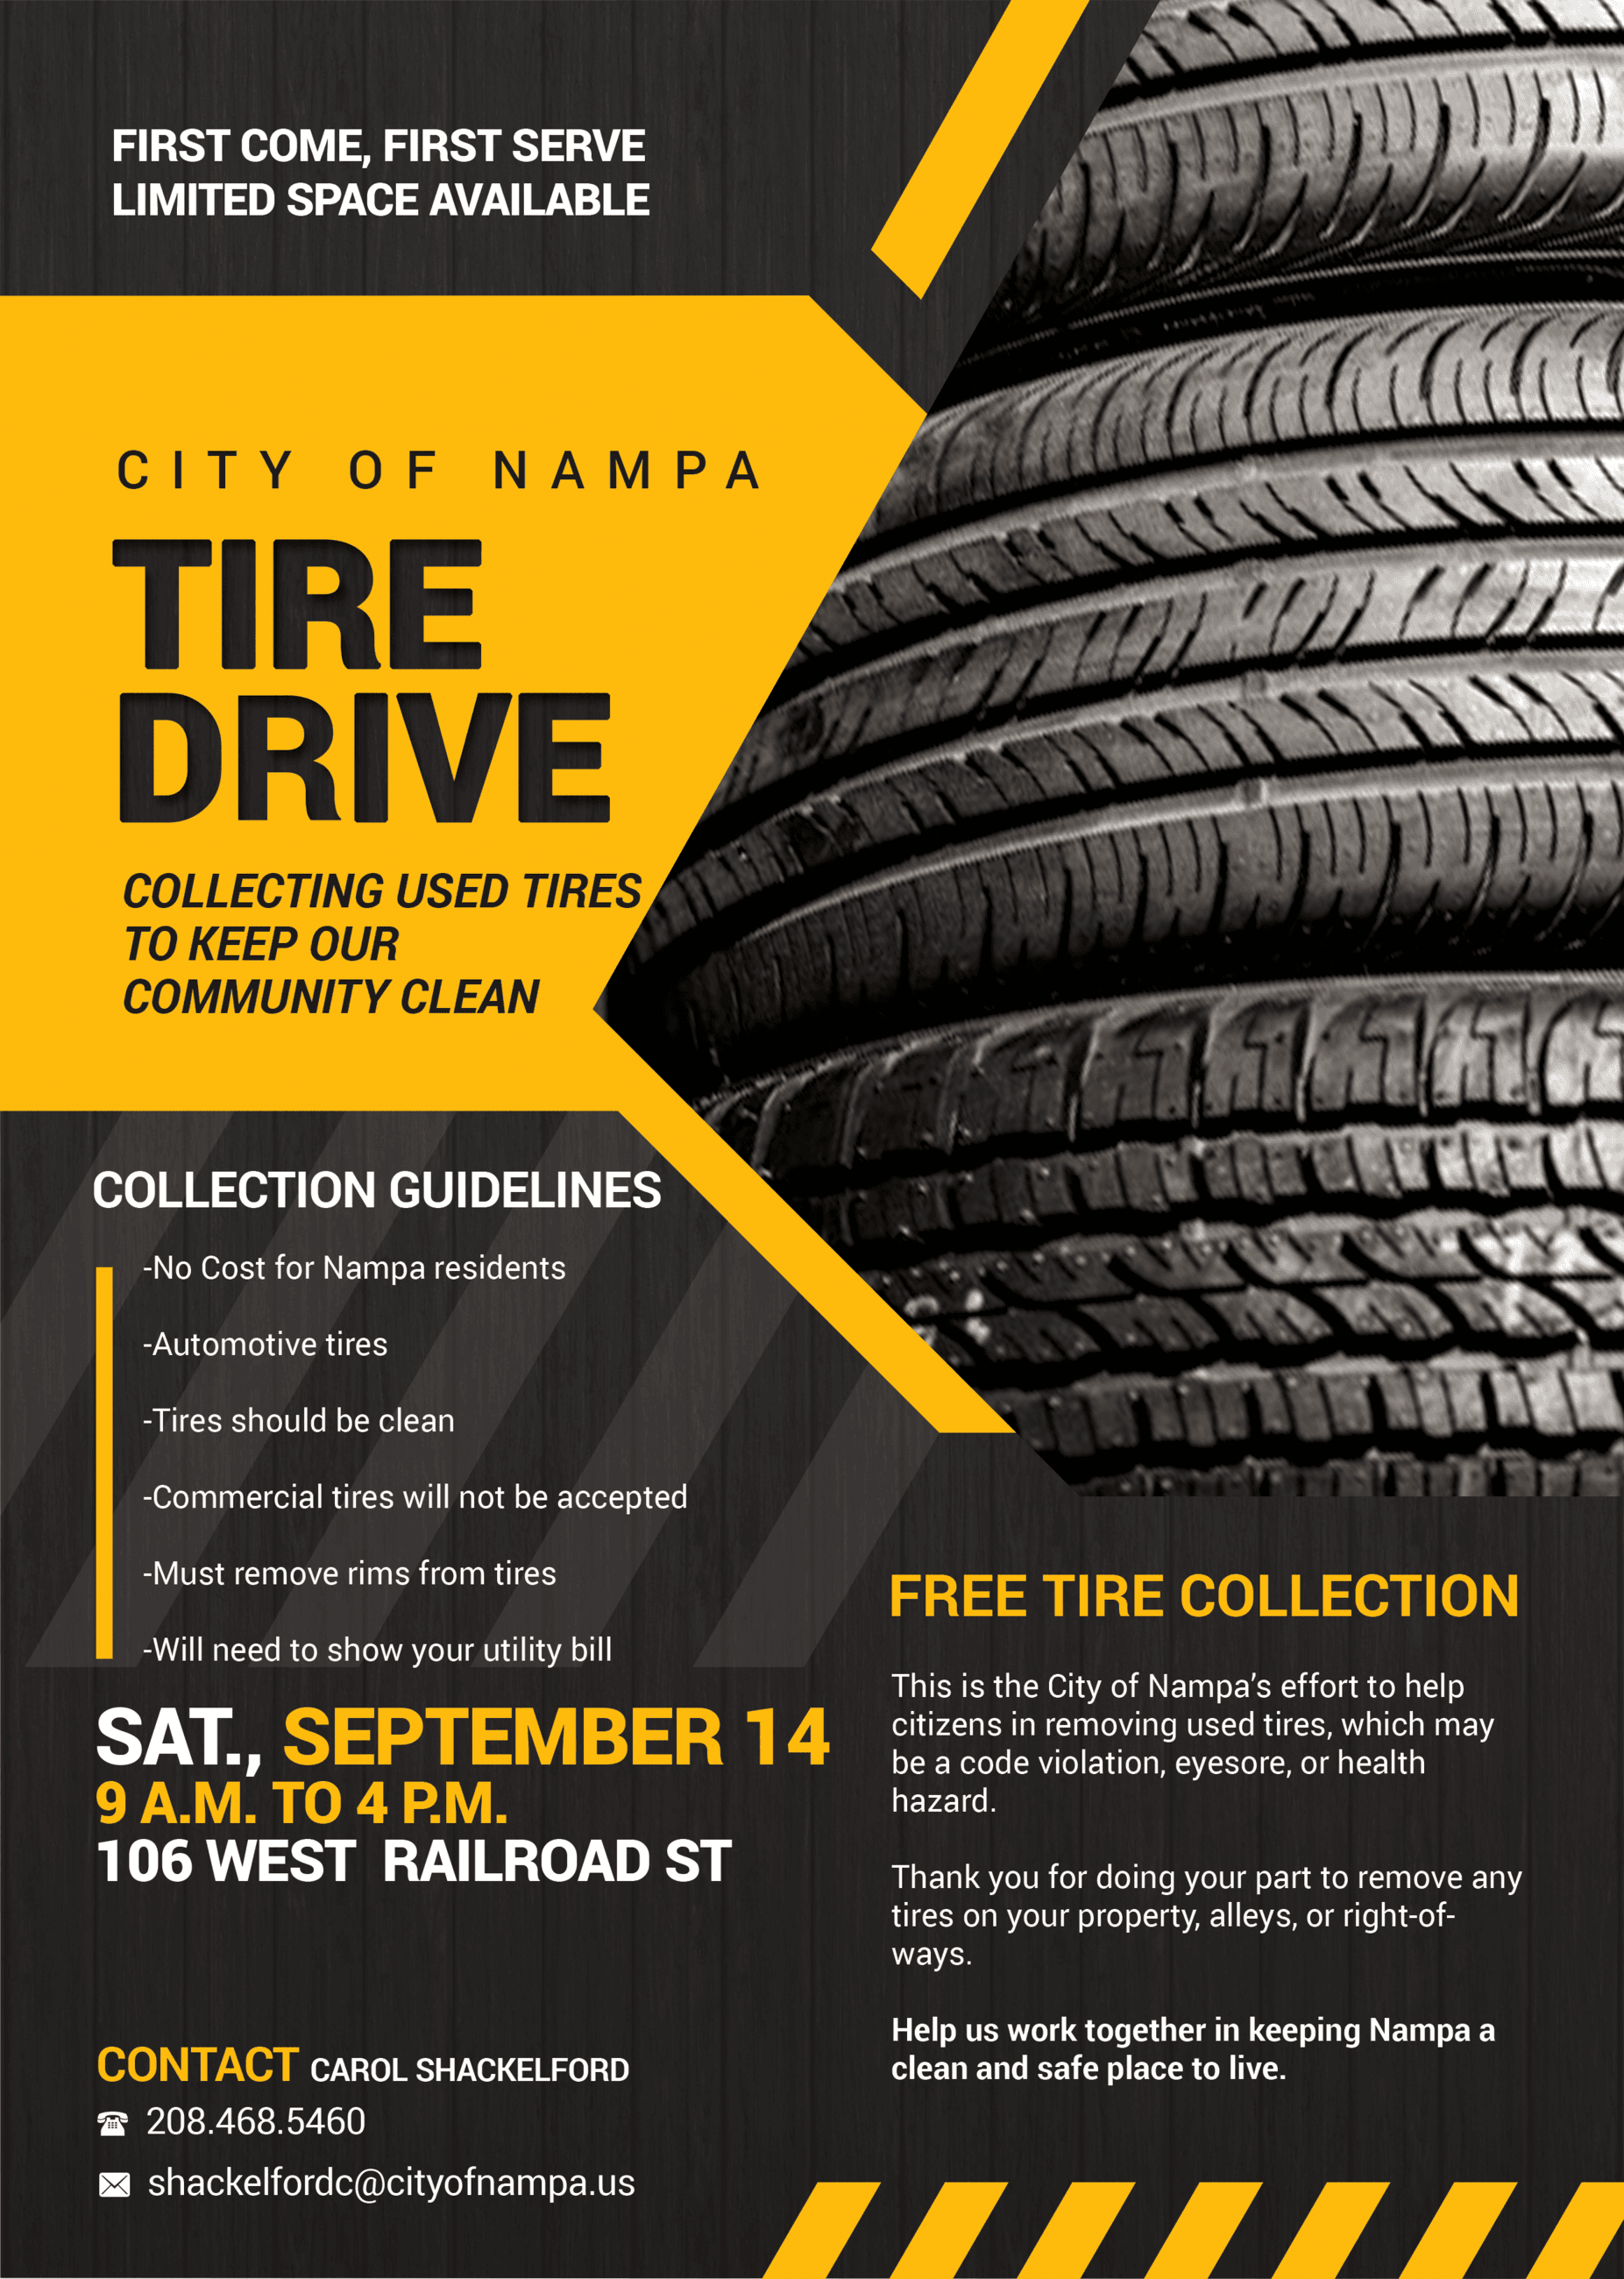 2019 Tire Drive City of Nampa